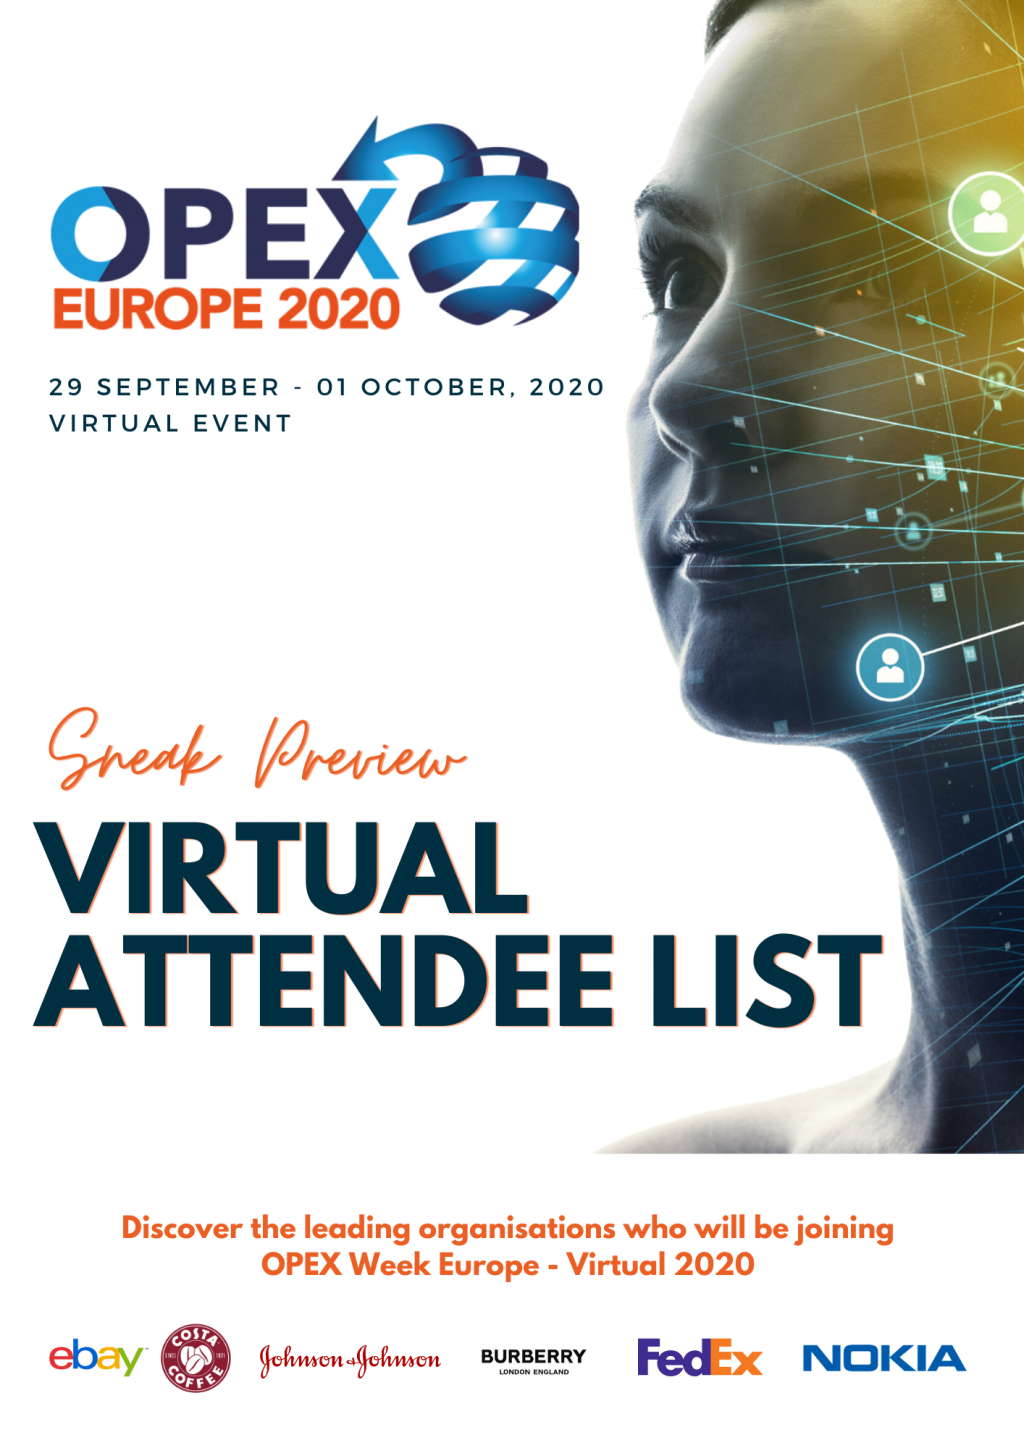 OPEX Europe Virtual 2020 - Attendee List Sneak Preview